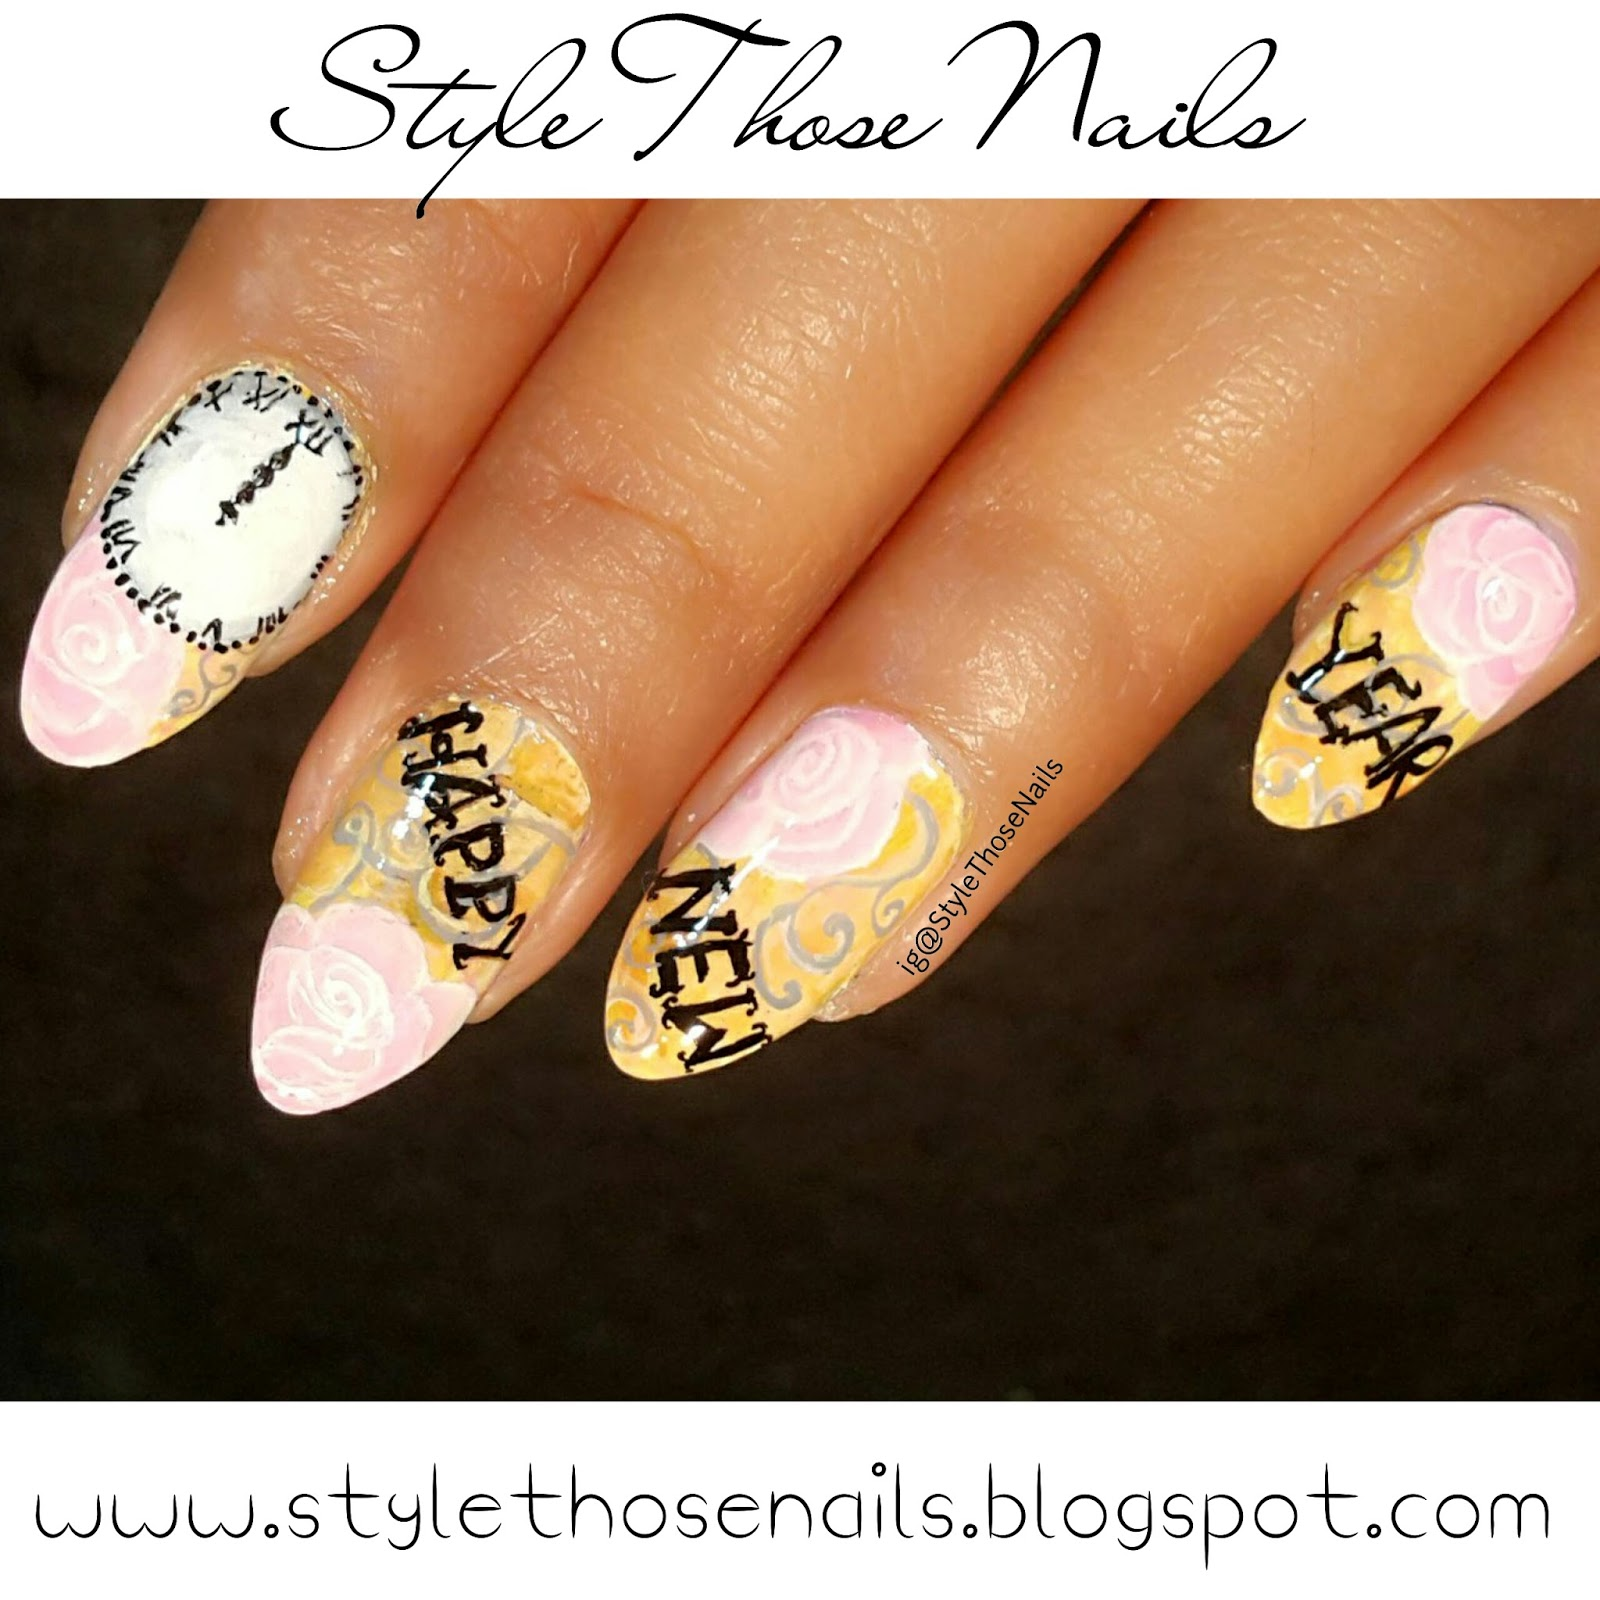 Style Those Nails: 40 Great Nailart Ideas- New Year Nails 2016